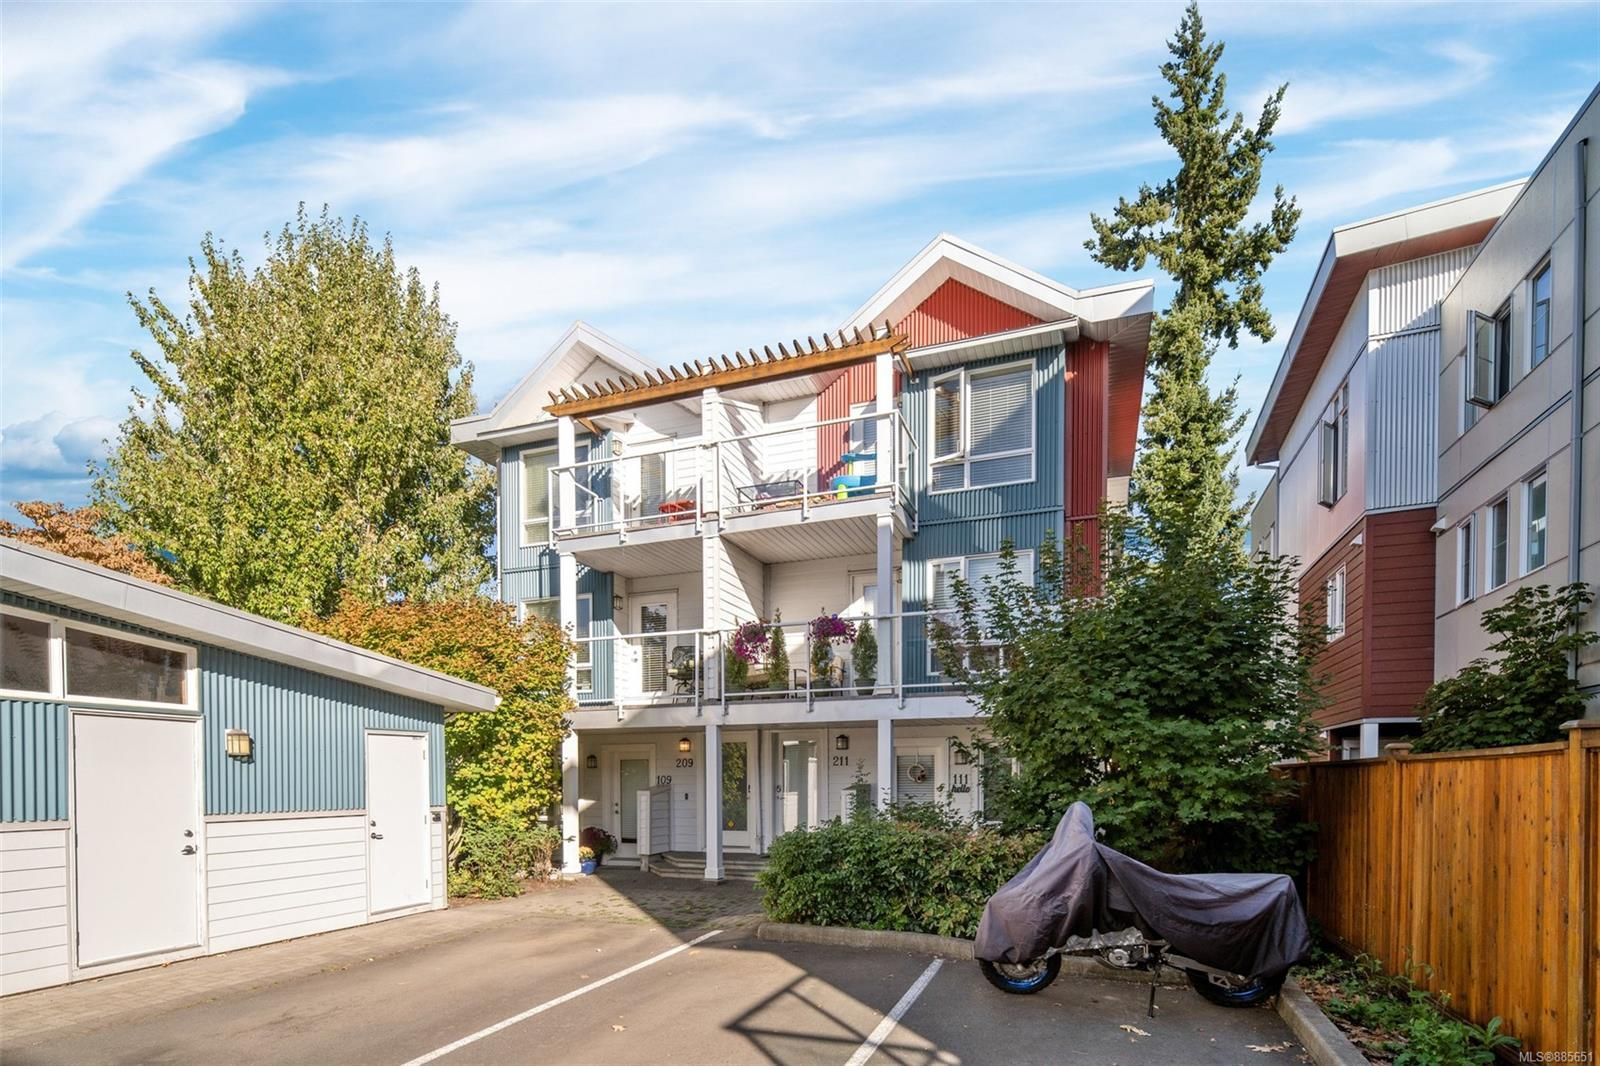 Main Photo: 209 2731 Jacklin Rd in Langford: La Langford Proper Row/Townhouse for sale : MLS®# 885651